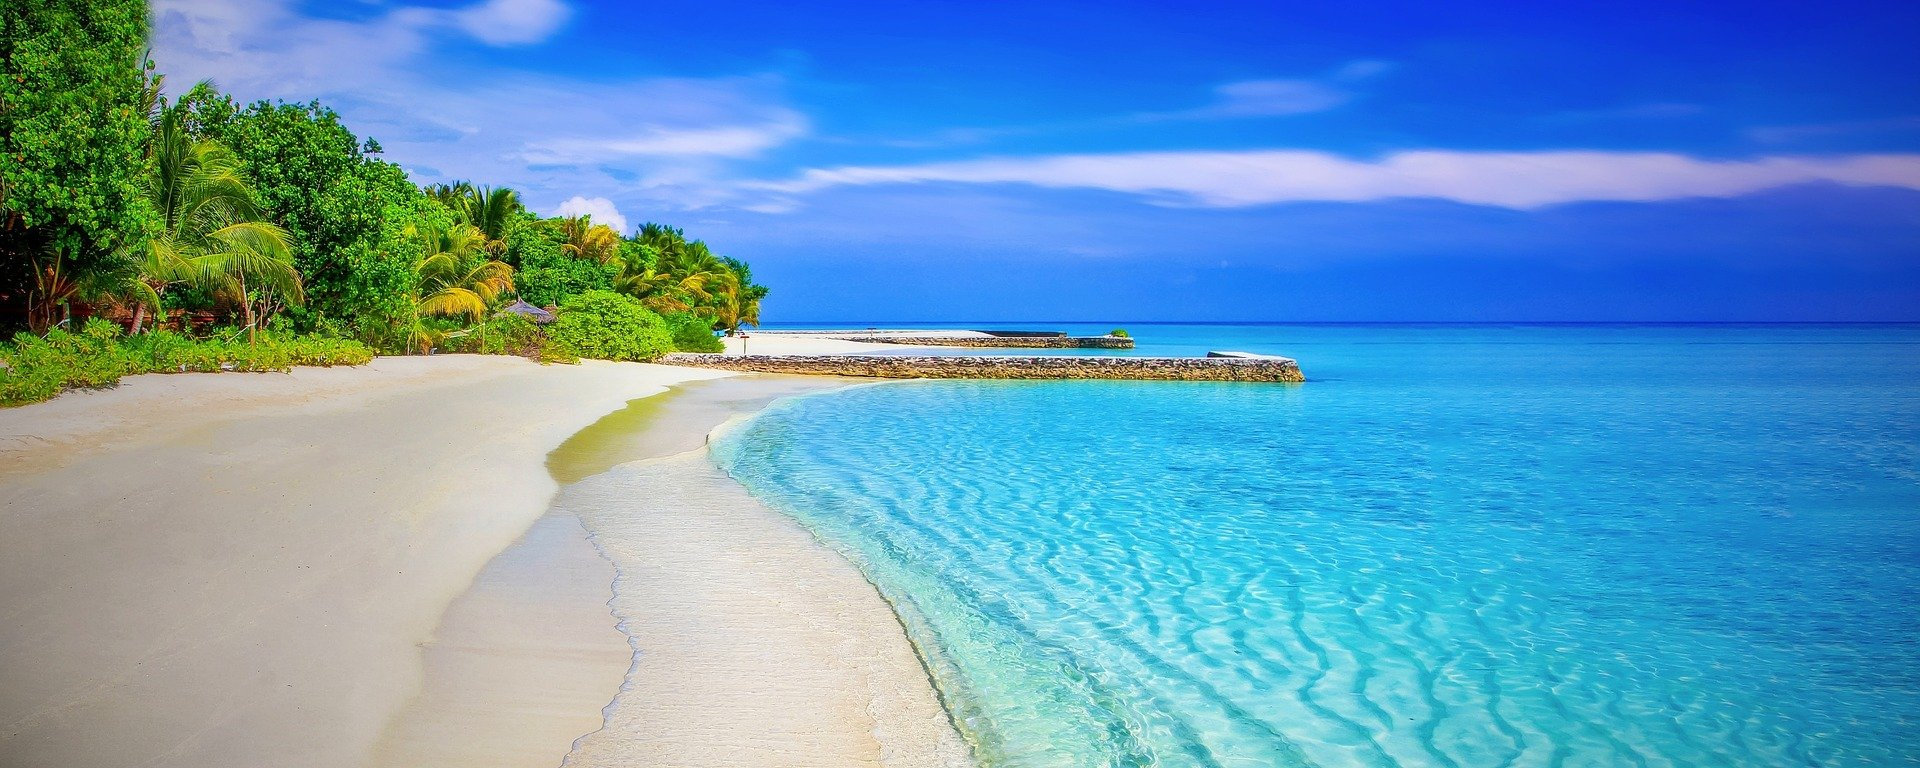 Pictured - A view of the beach on an island   Source:Pixabay